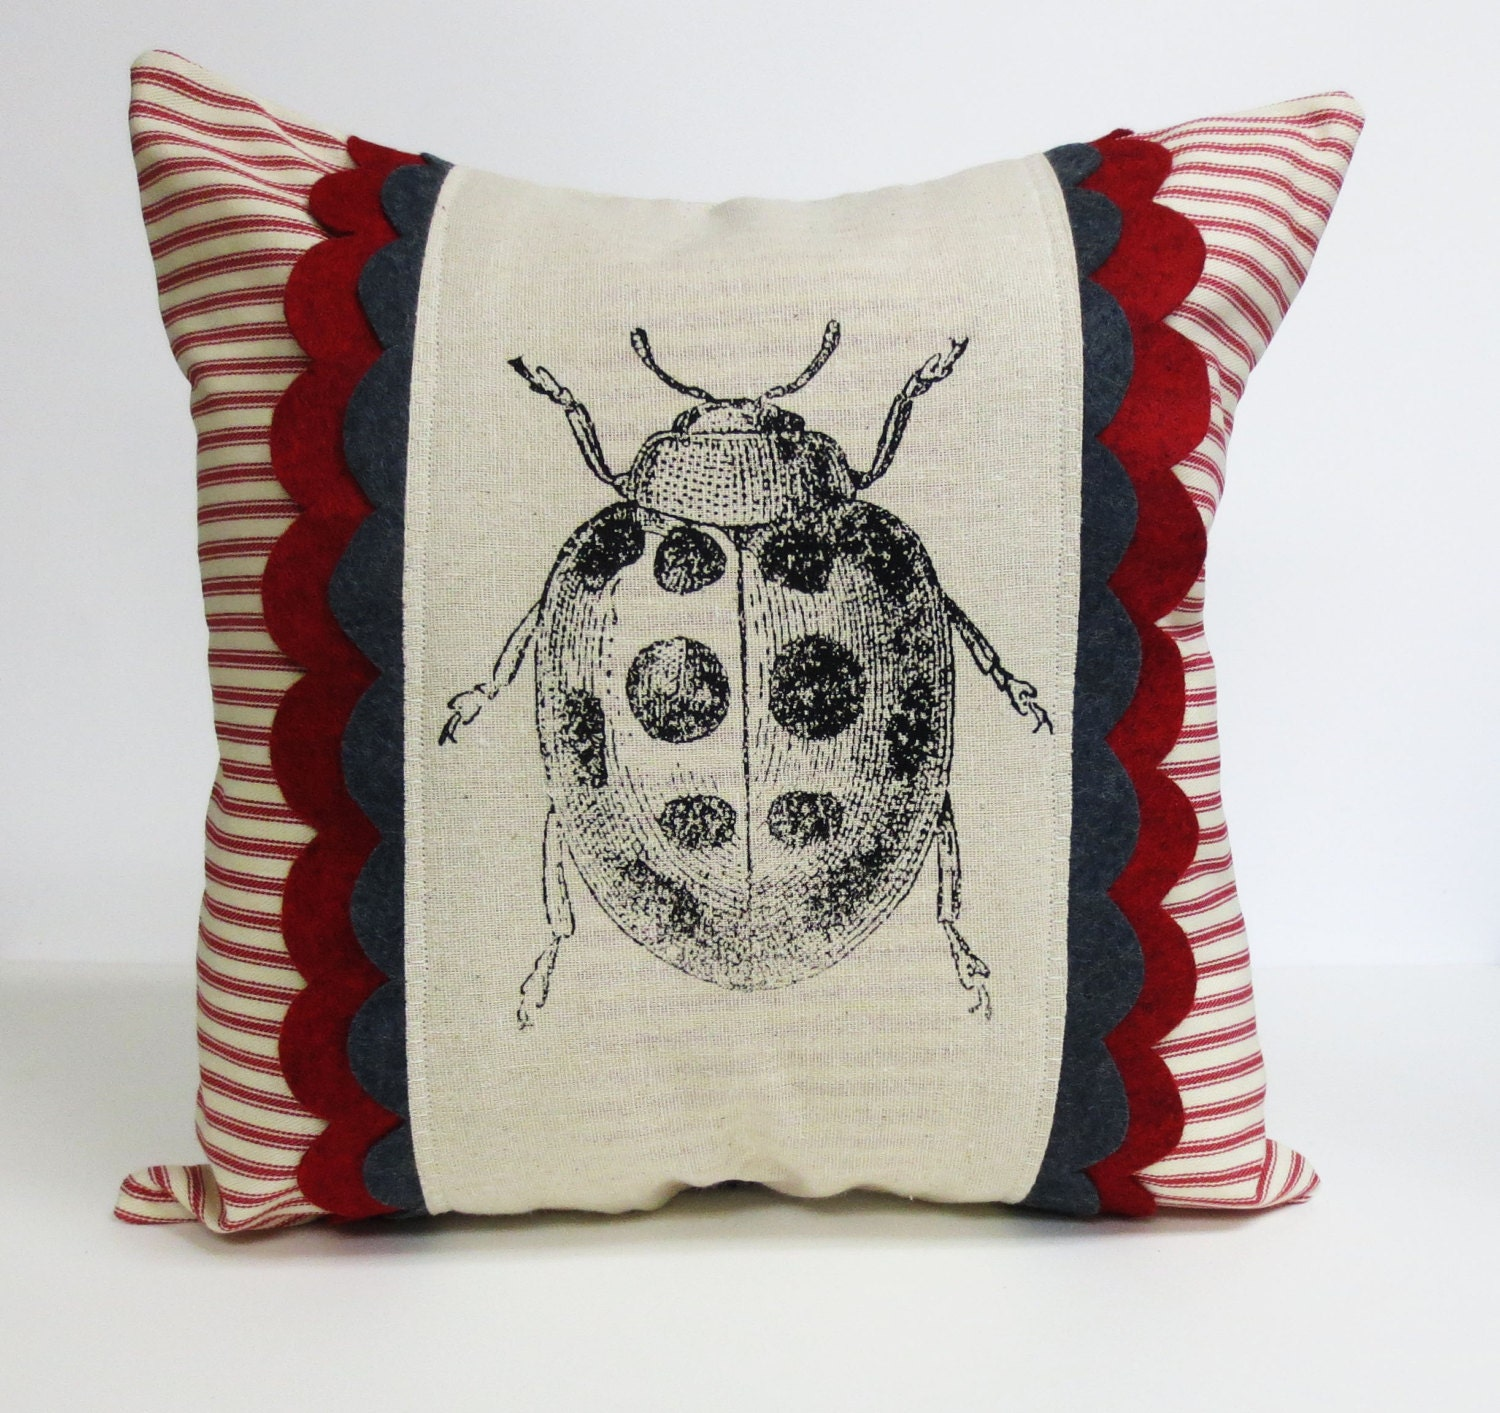 Throw Out Pillows Bed Bugs : Decorative throw pillow cushion cover with lady bug screen